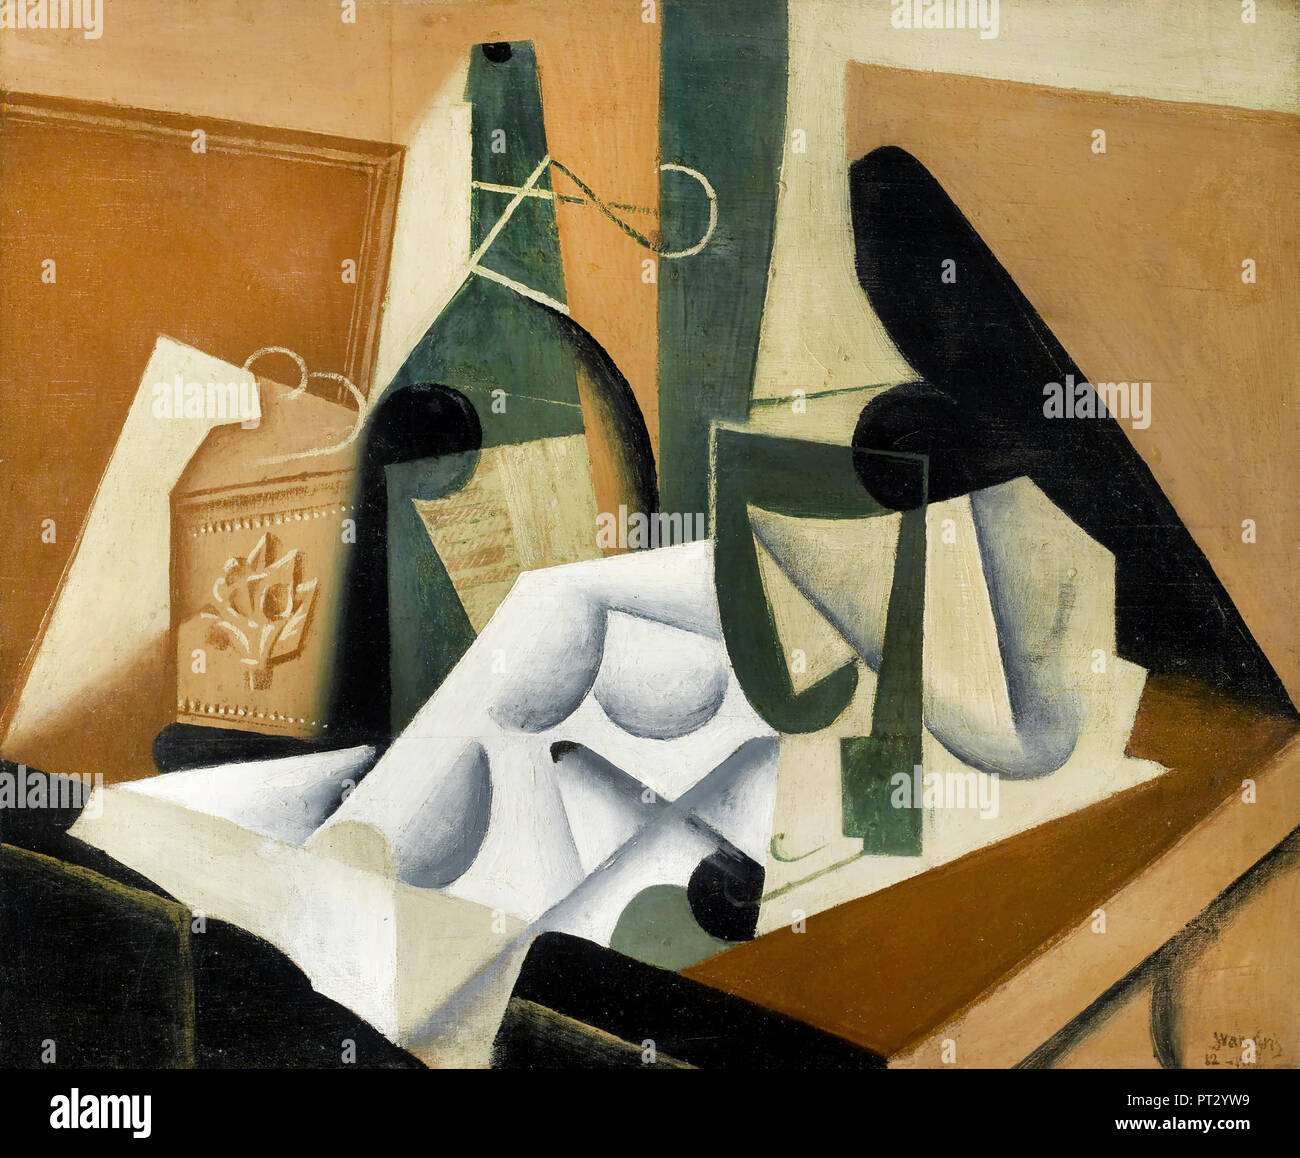 Juan Gris, The White Tablecloth 1912-1916 Oil on panel, Museum of Fine Arts, Houston, TX, USA. - Stock Image